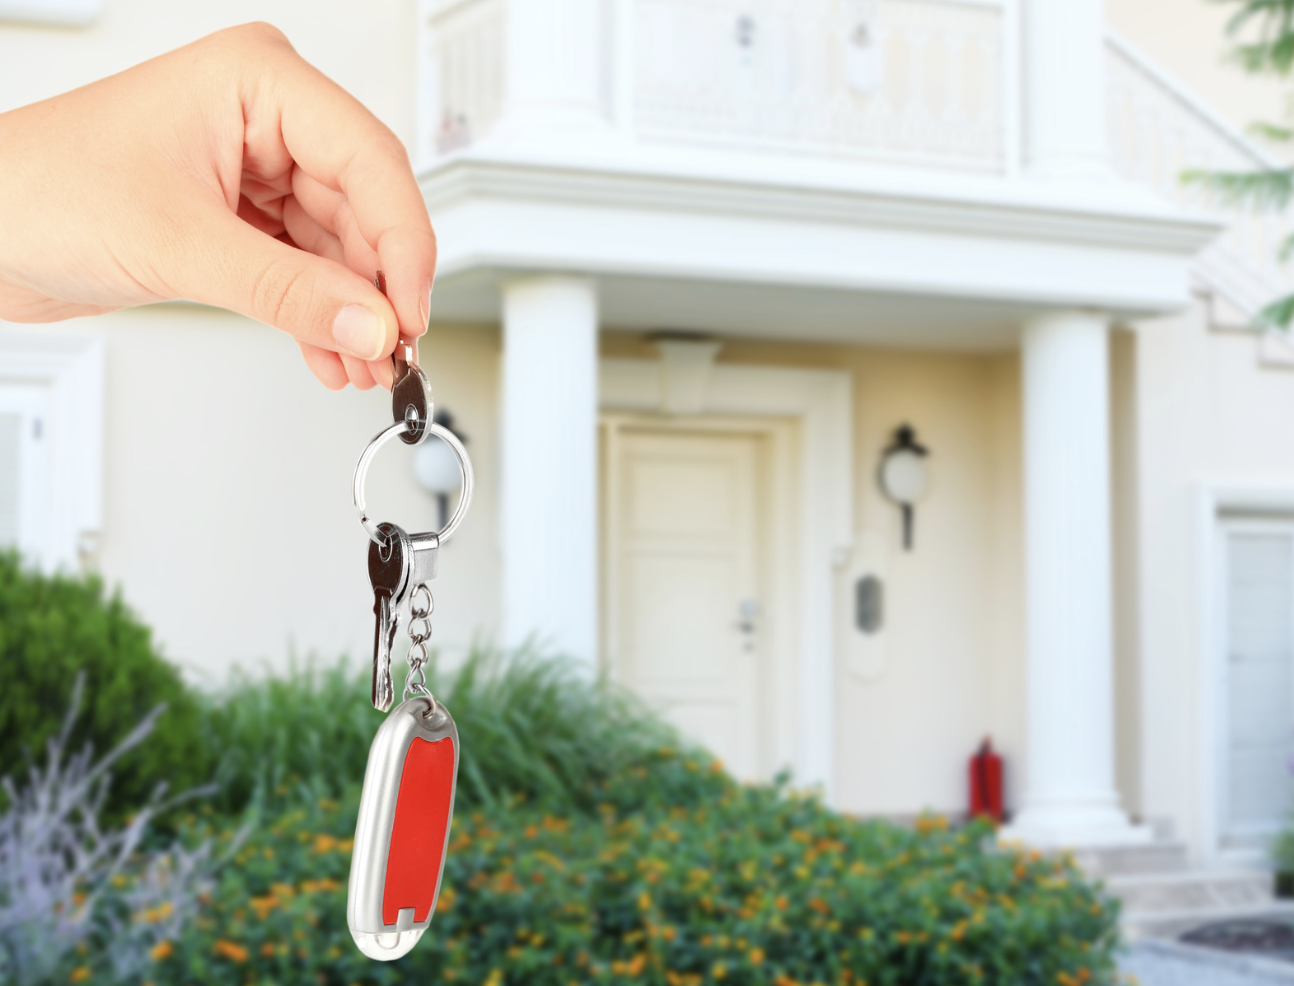 Handing over the keys to Real Property Management Insight